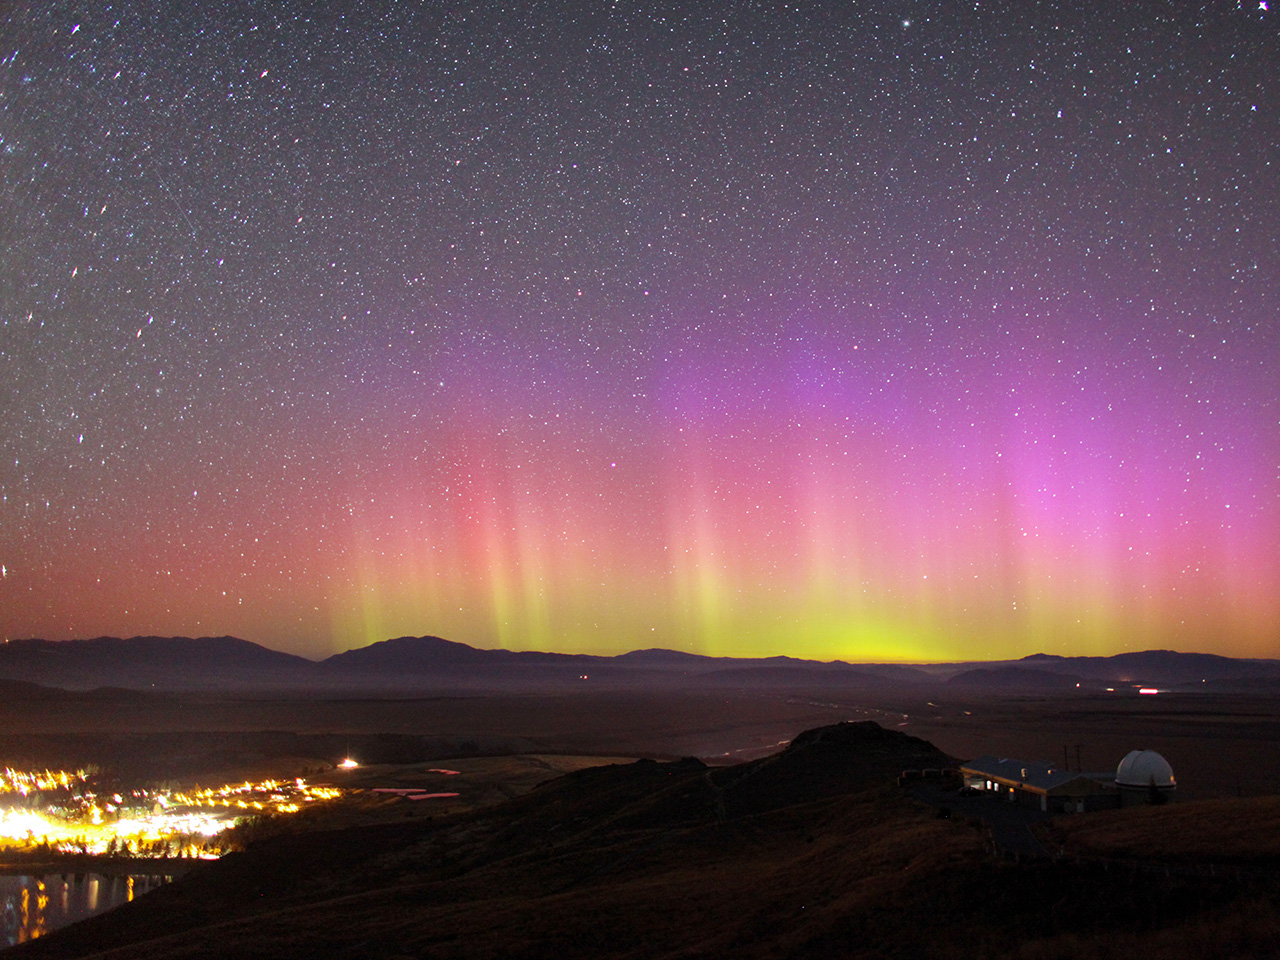 Chasing the Southern Lights in New Zealand